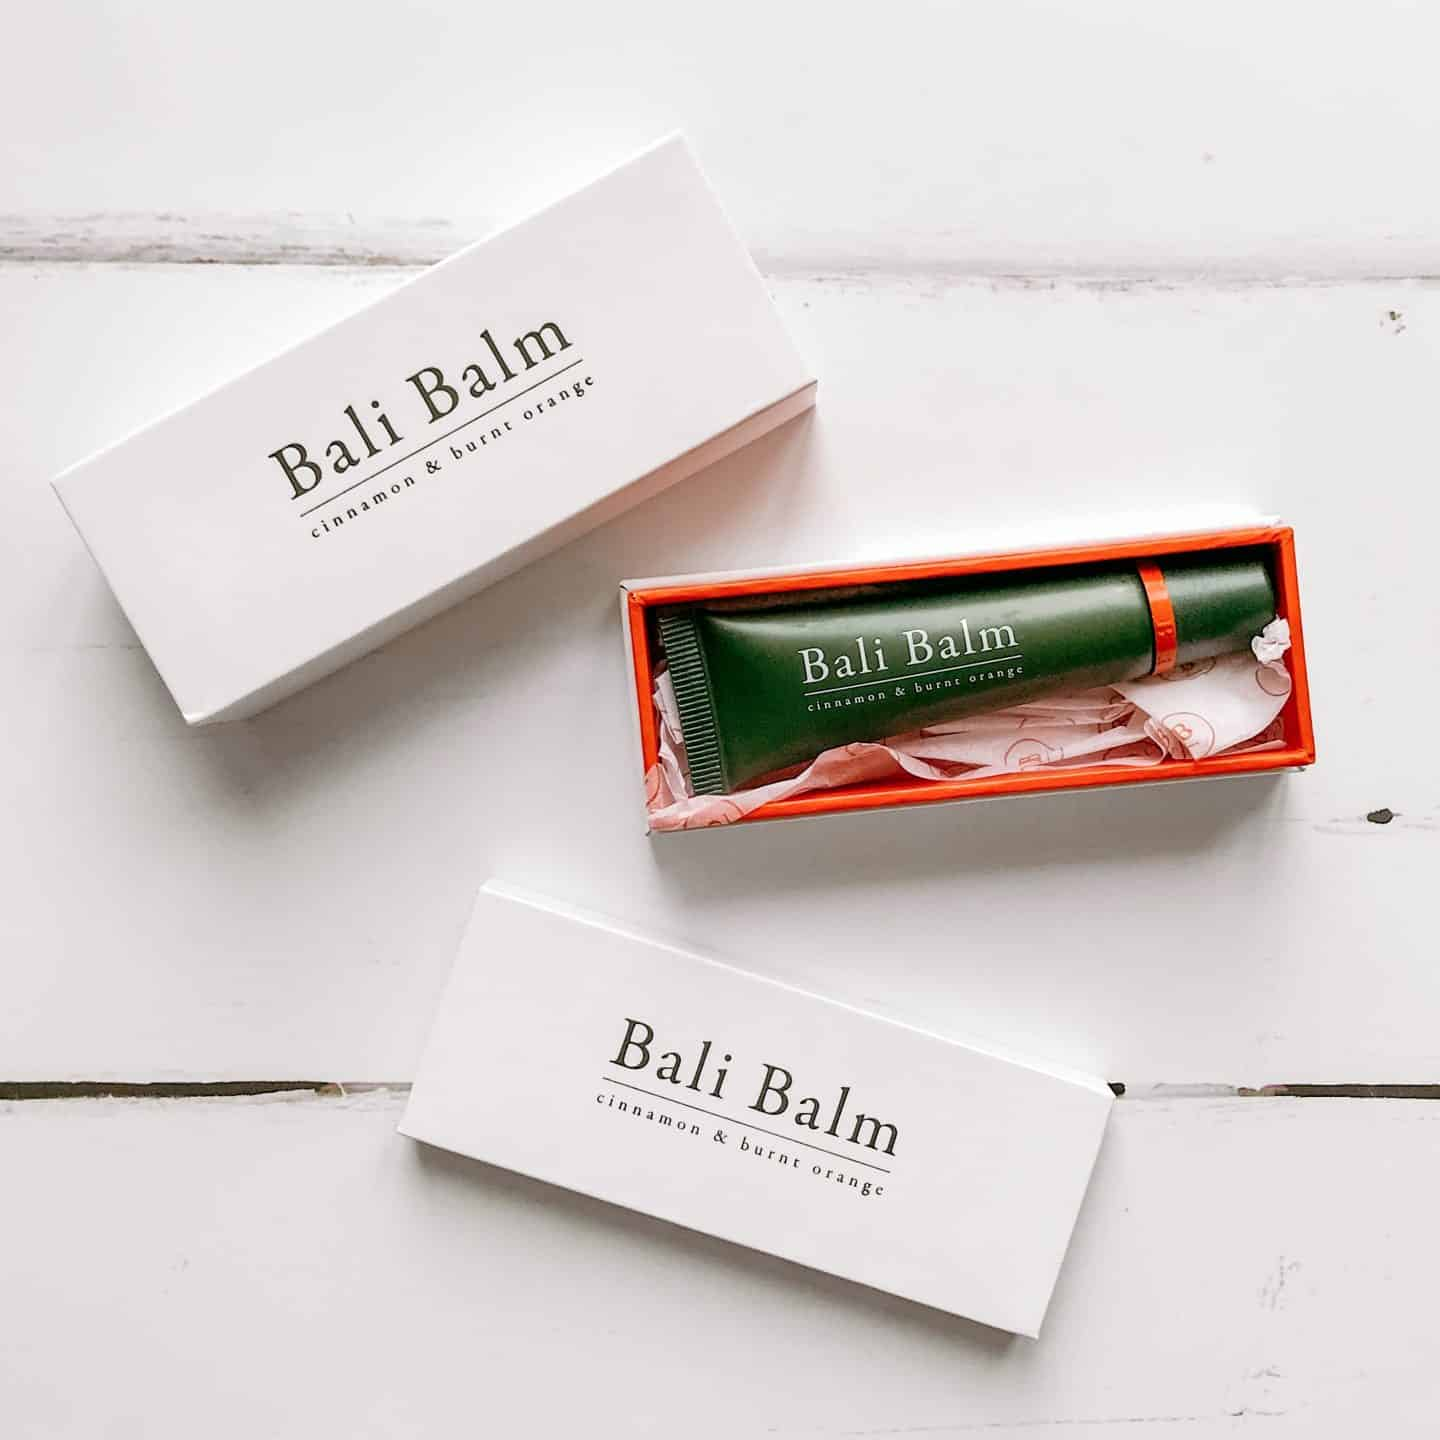 Luxury Natural Lip Balm from Bali Balm with packaging